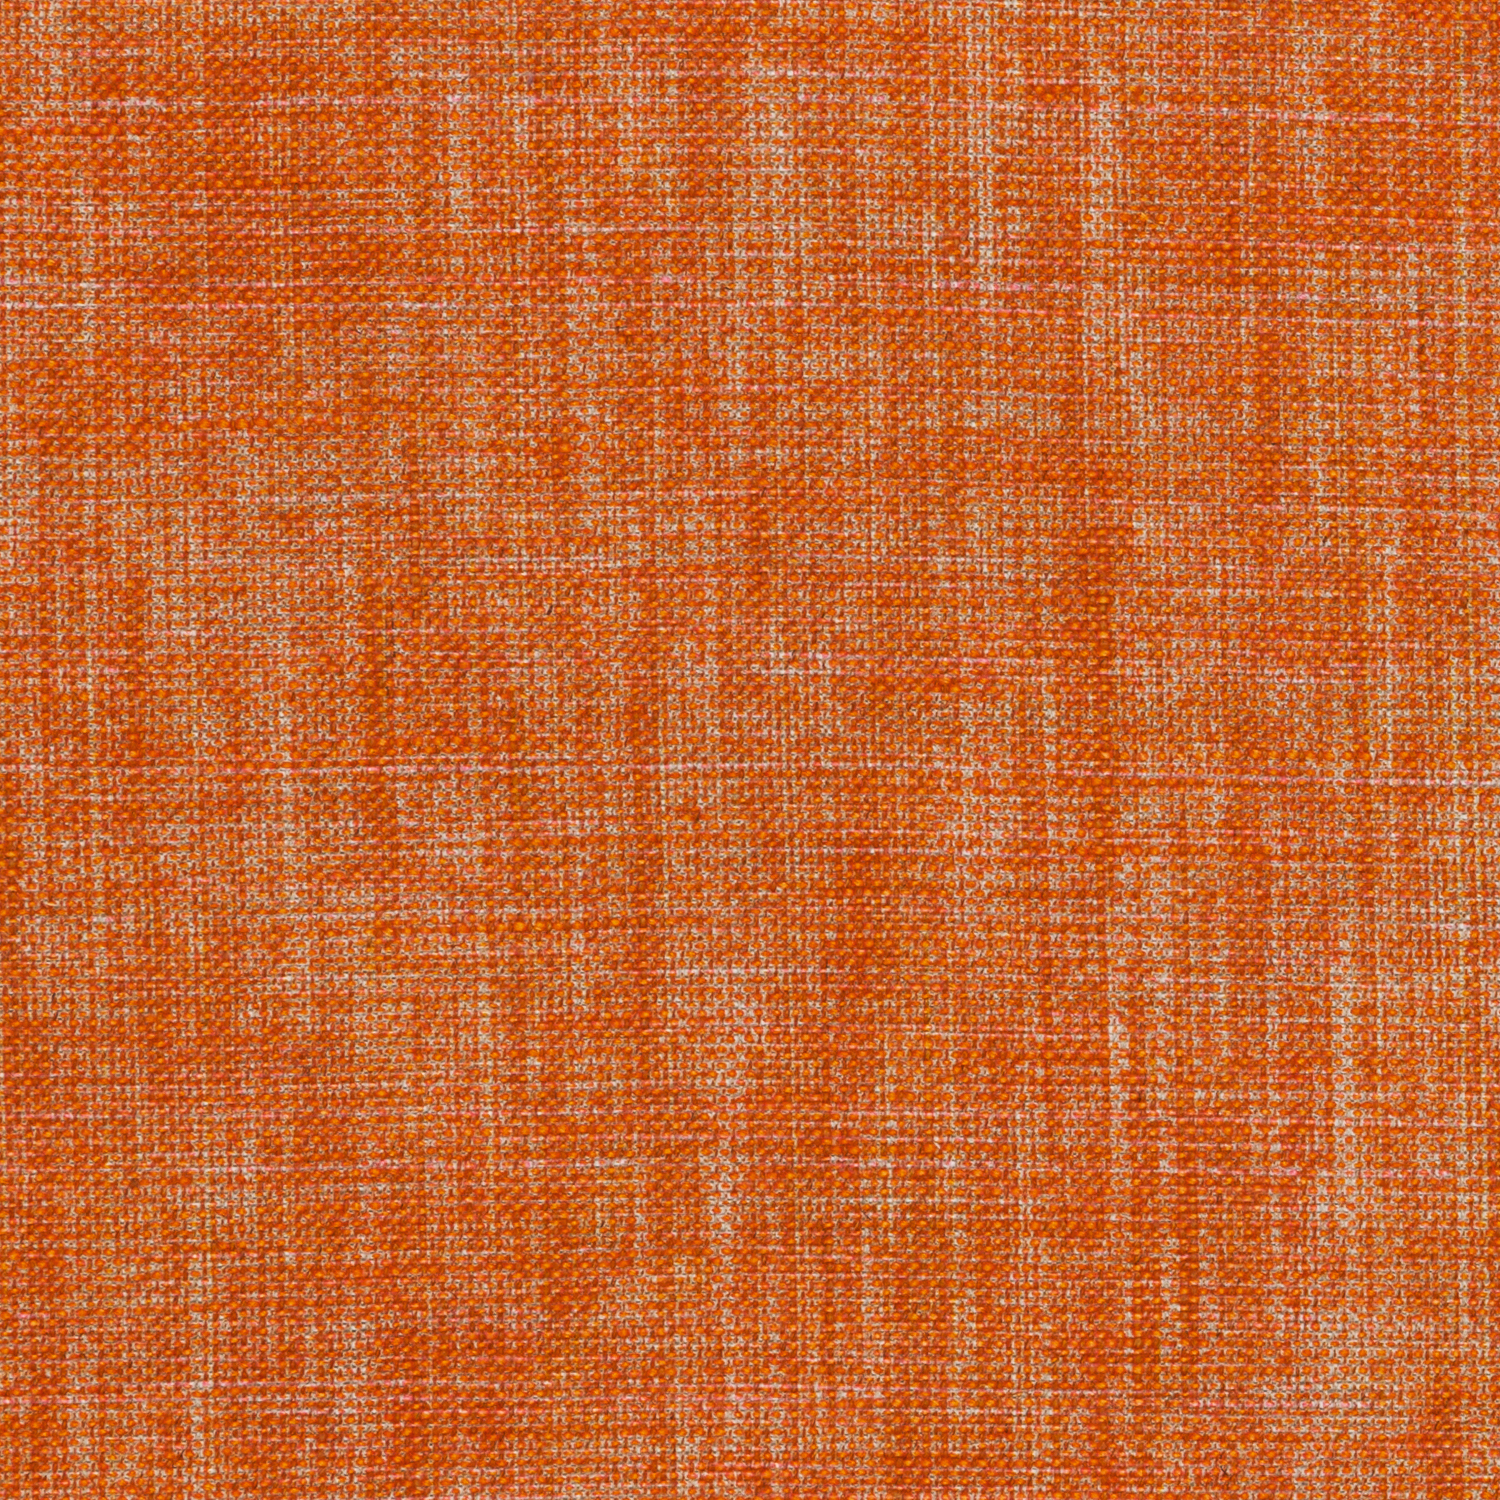 N-121-Red-Plain Linen, Fresco(1)